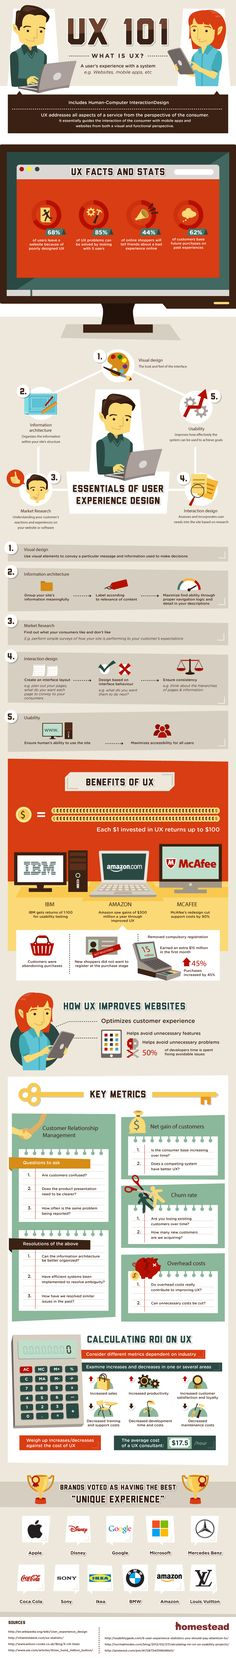 UX 101: What is User Experience? [Infographic] #ux #infographic